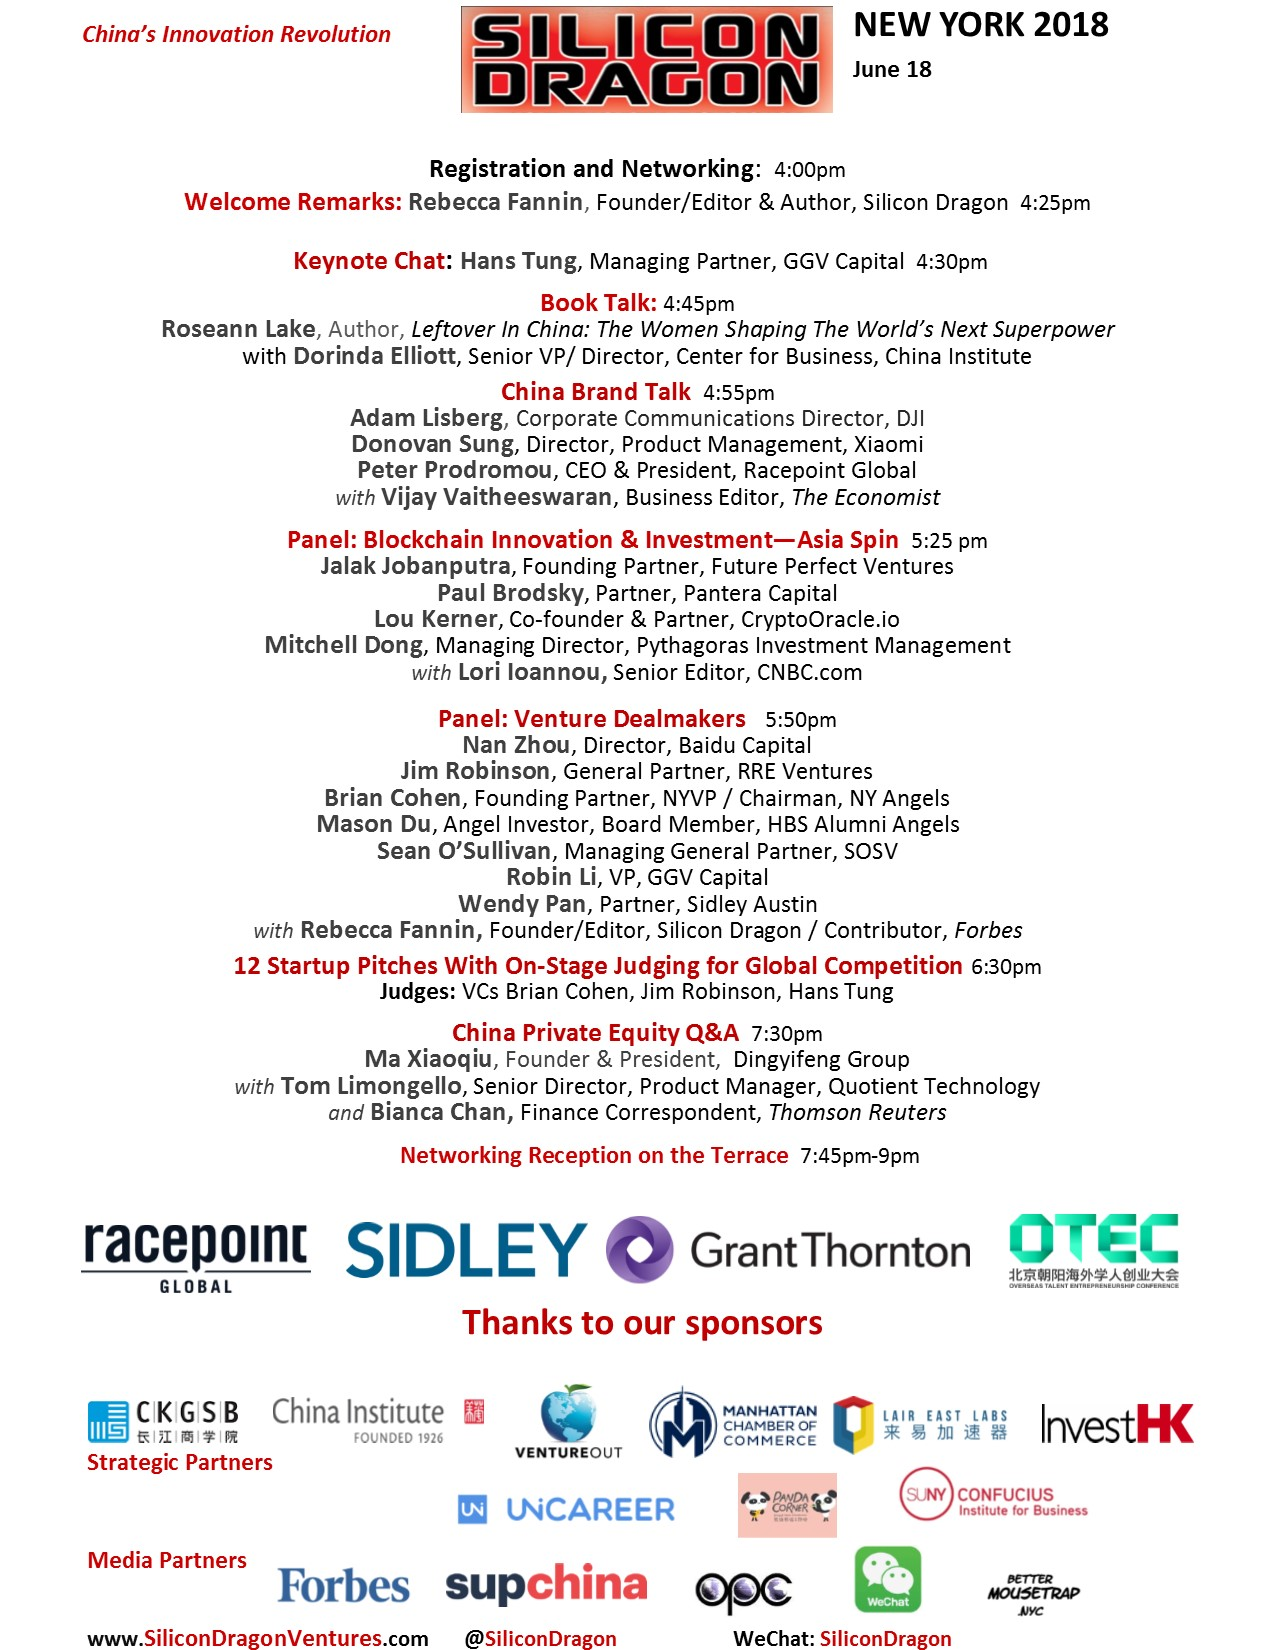 program final_Silicon Dragon NY 2018, June 18